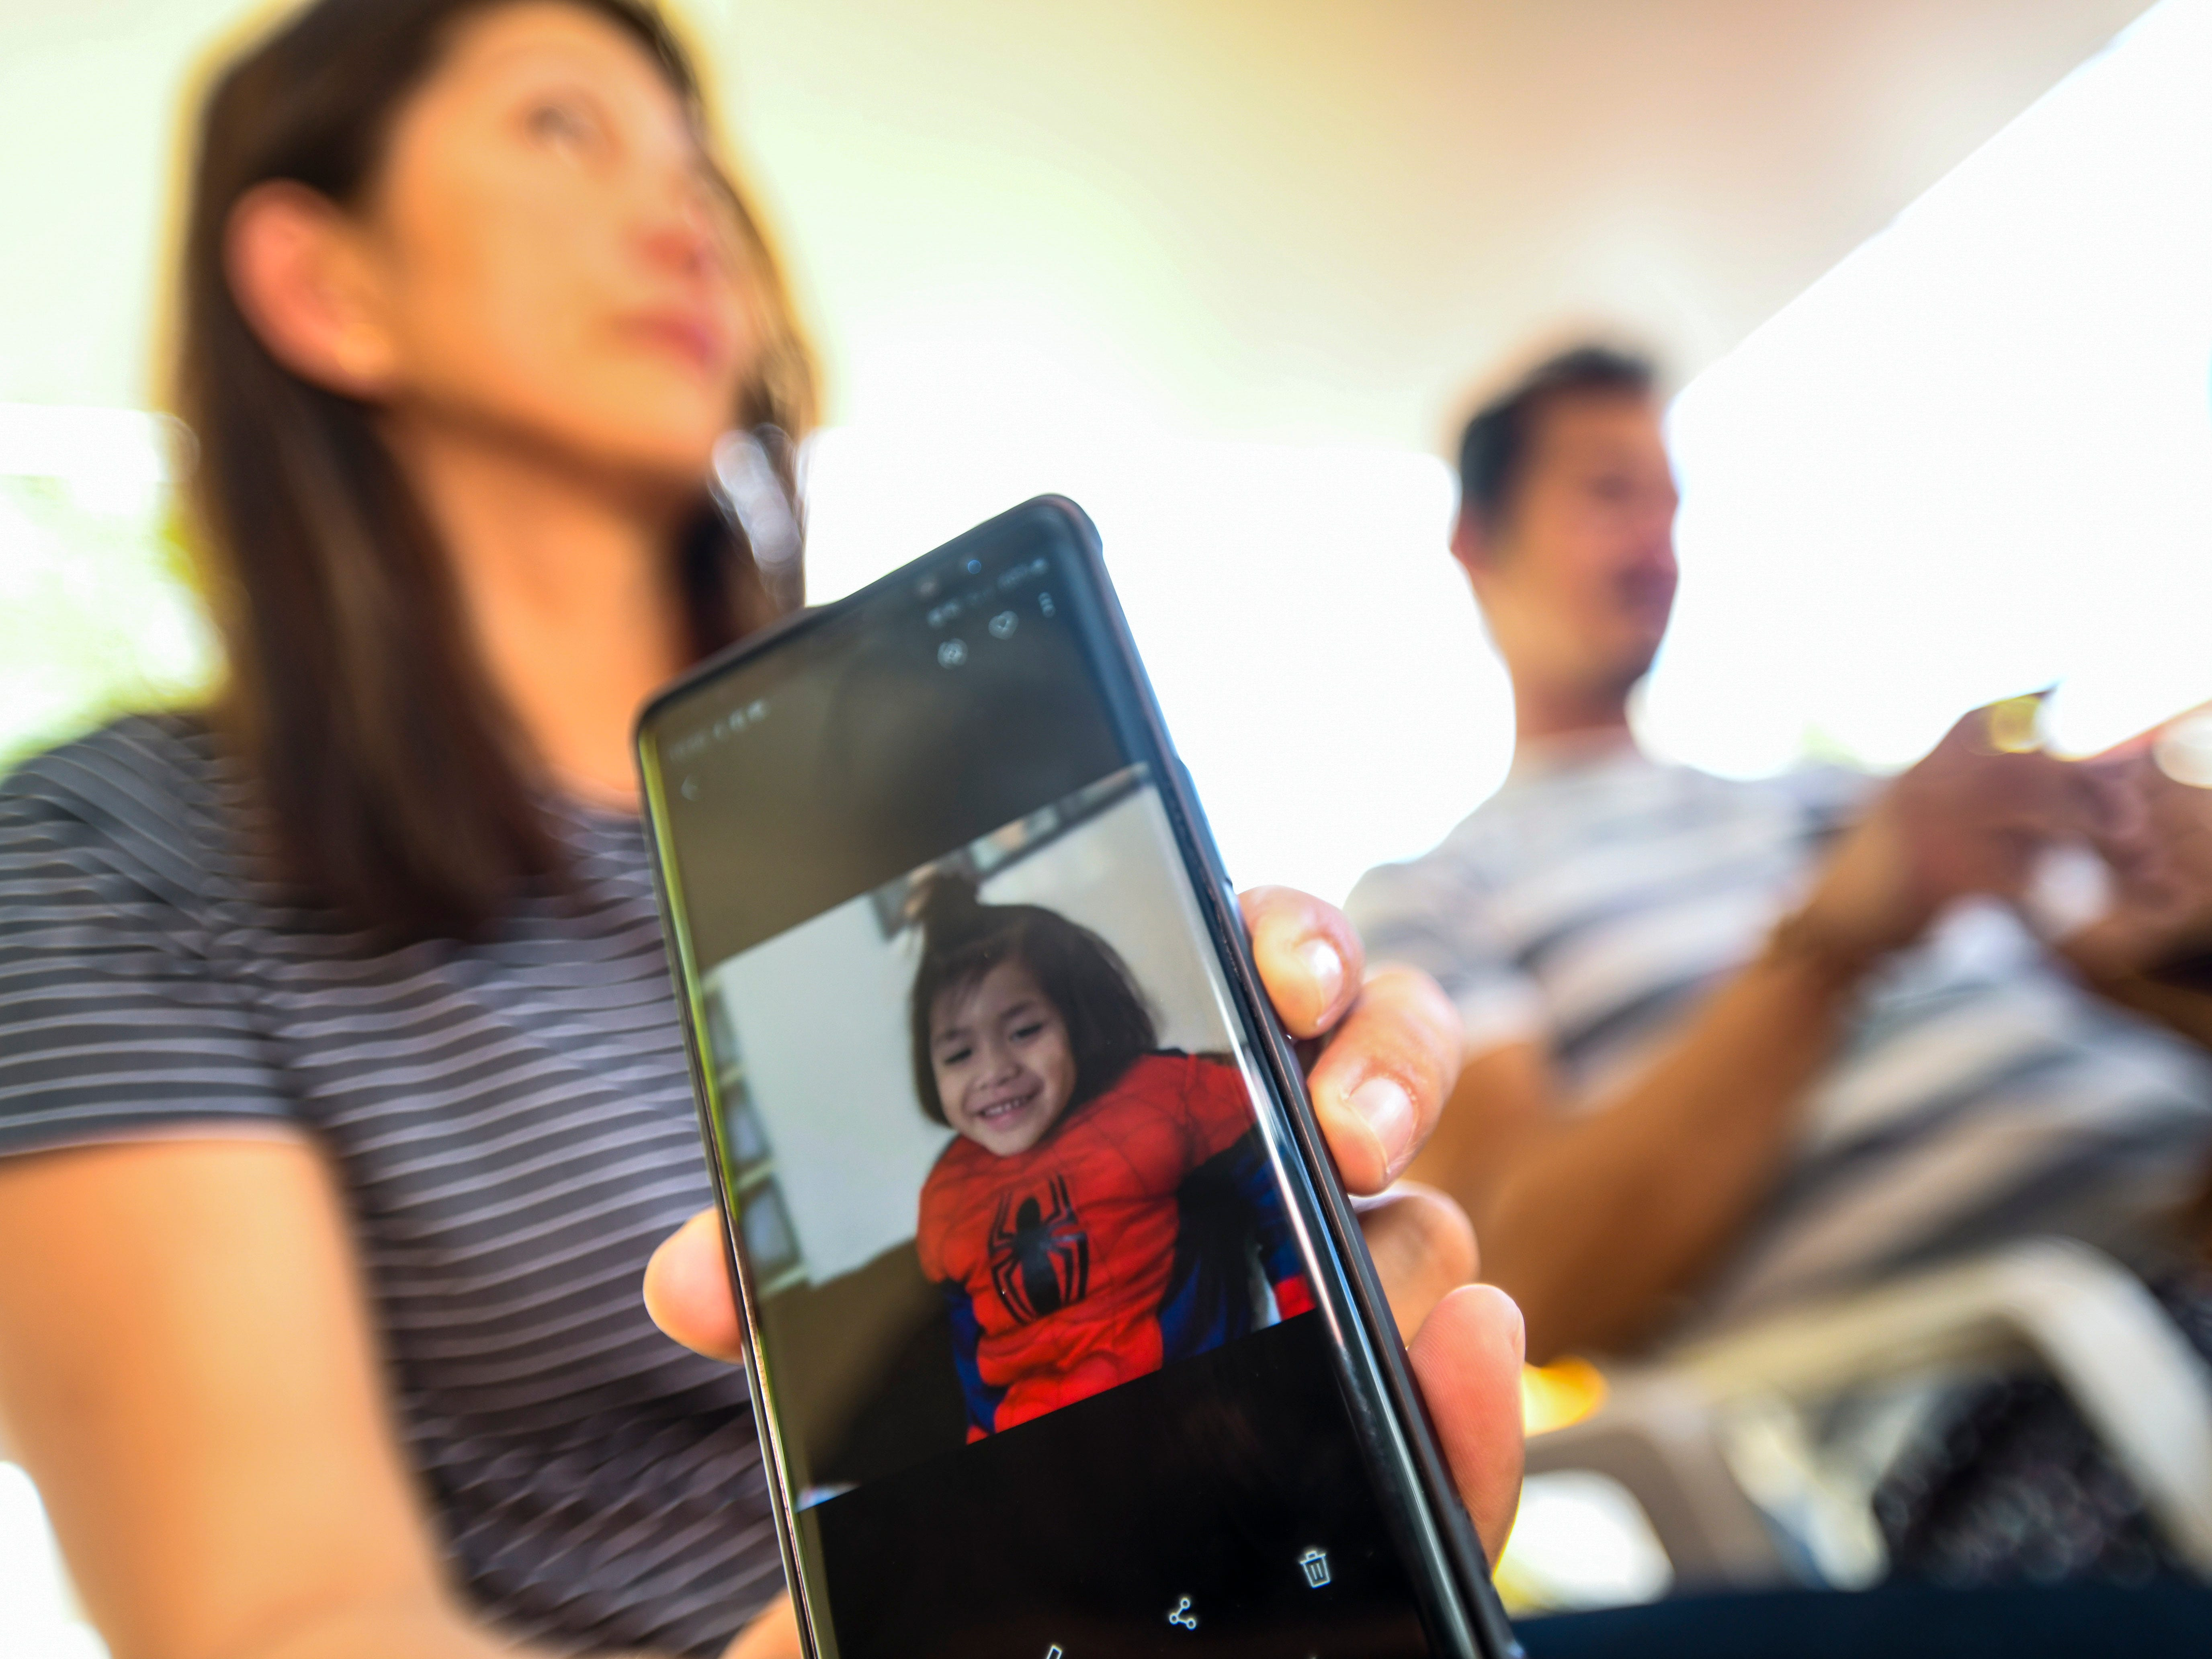 Kathleen David shares a Spiderman image of her four-year-old nephew, Jericho Zion David, as she and the boy's father, Enrique David, reflect on memories of the child outside the family's Dededo home on May 8, 2019. The four-year-old toddler died after being struck by a motorist driving in front of the family's residence the previous evening on May 7.